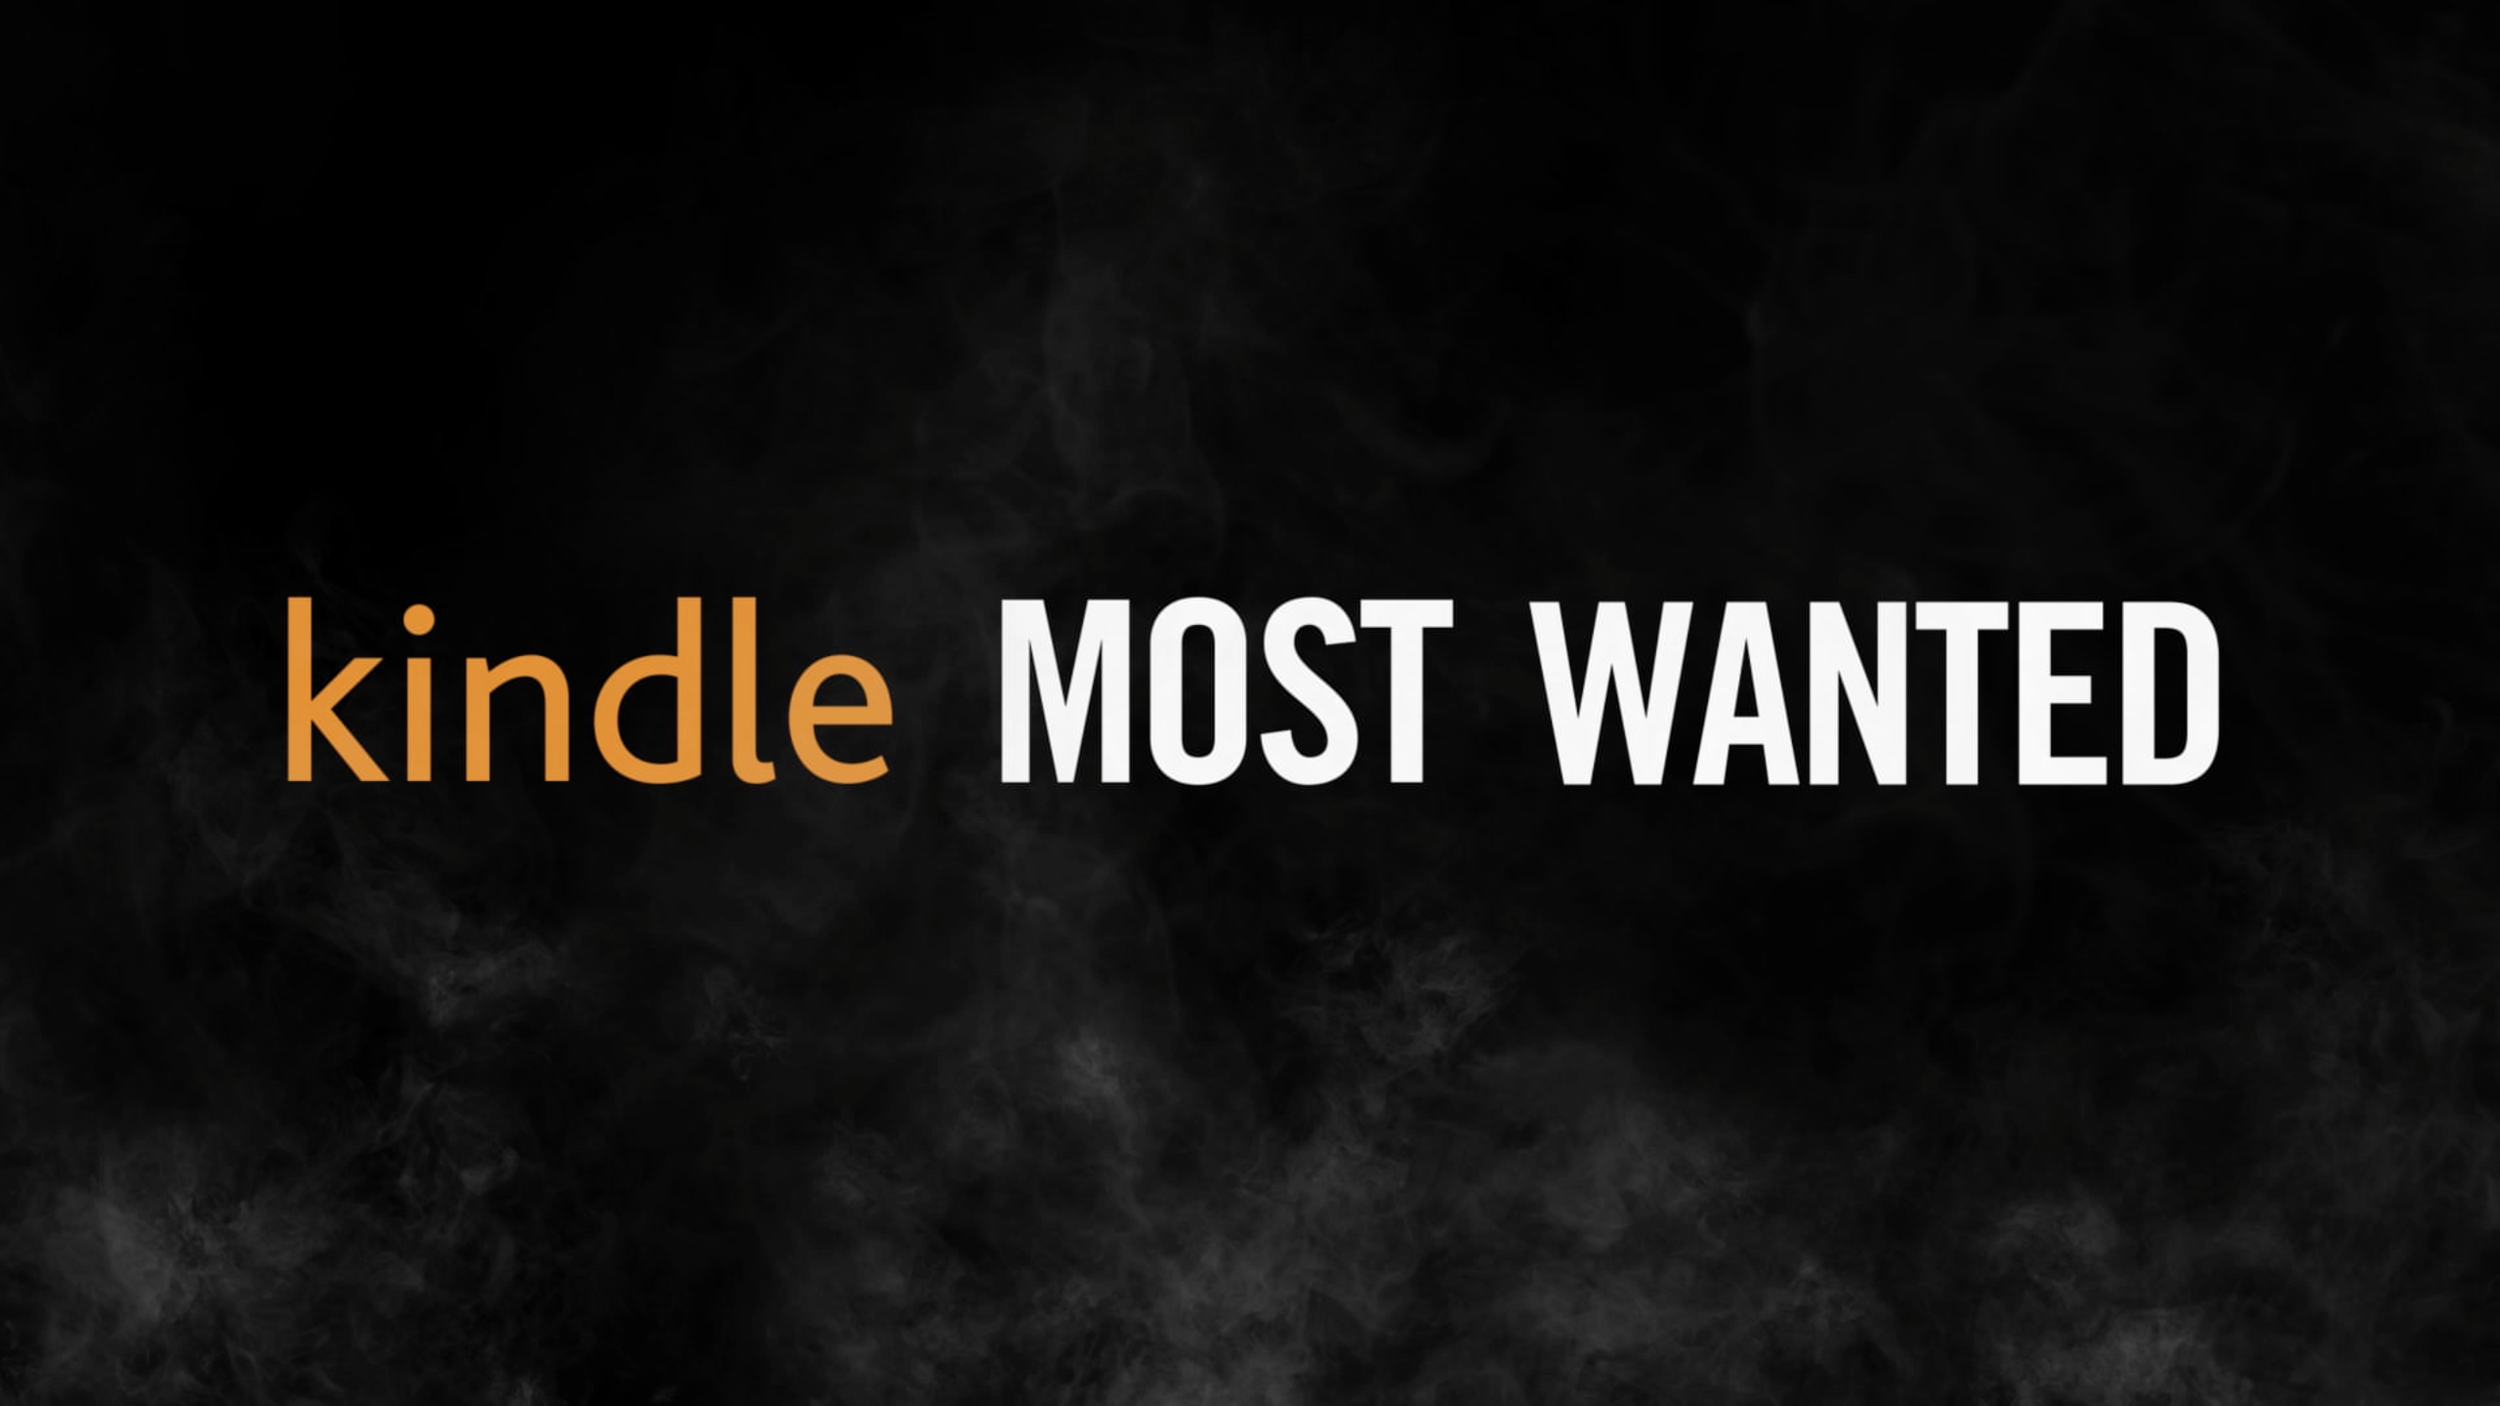 KINDLE_MOST_WANTED